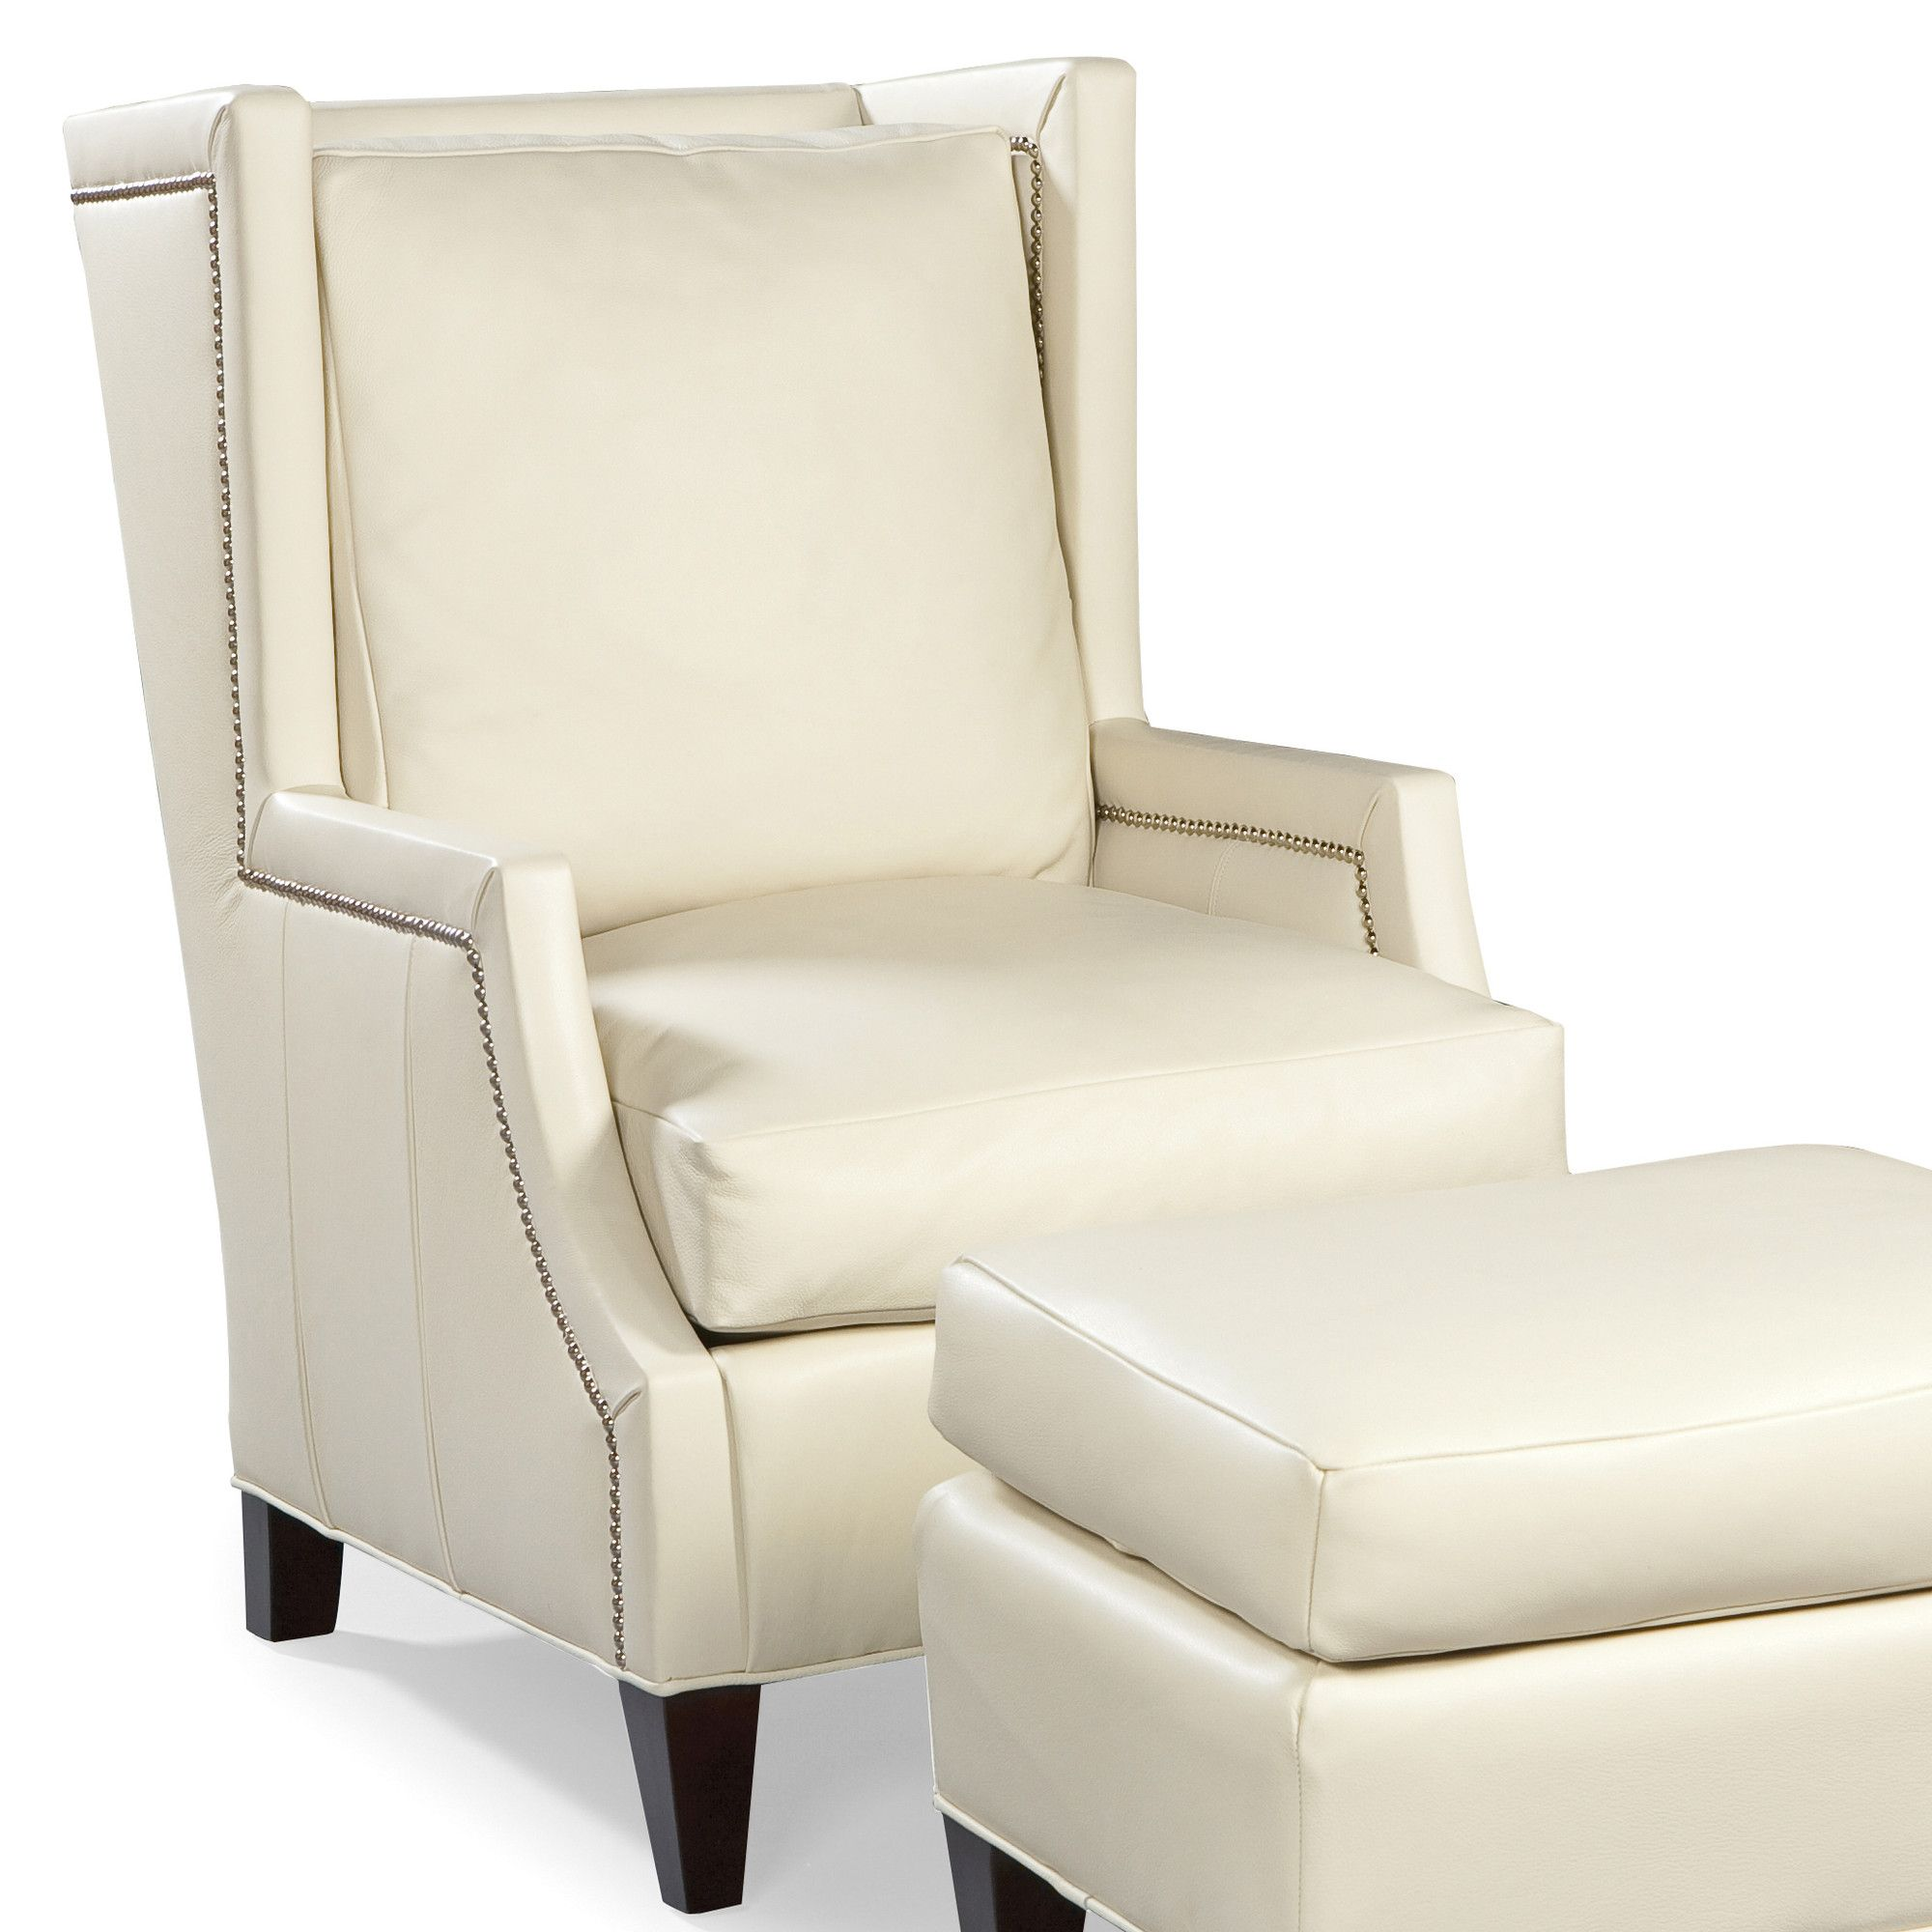 Leather High Back Wing Chair Wingback chair, High back